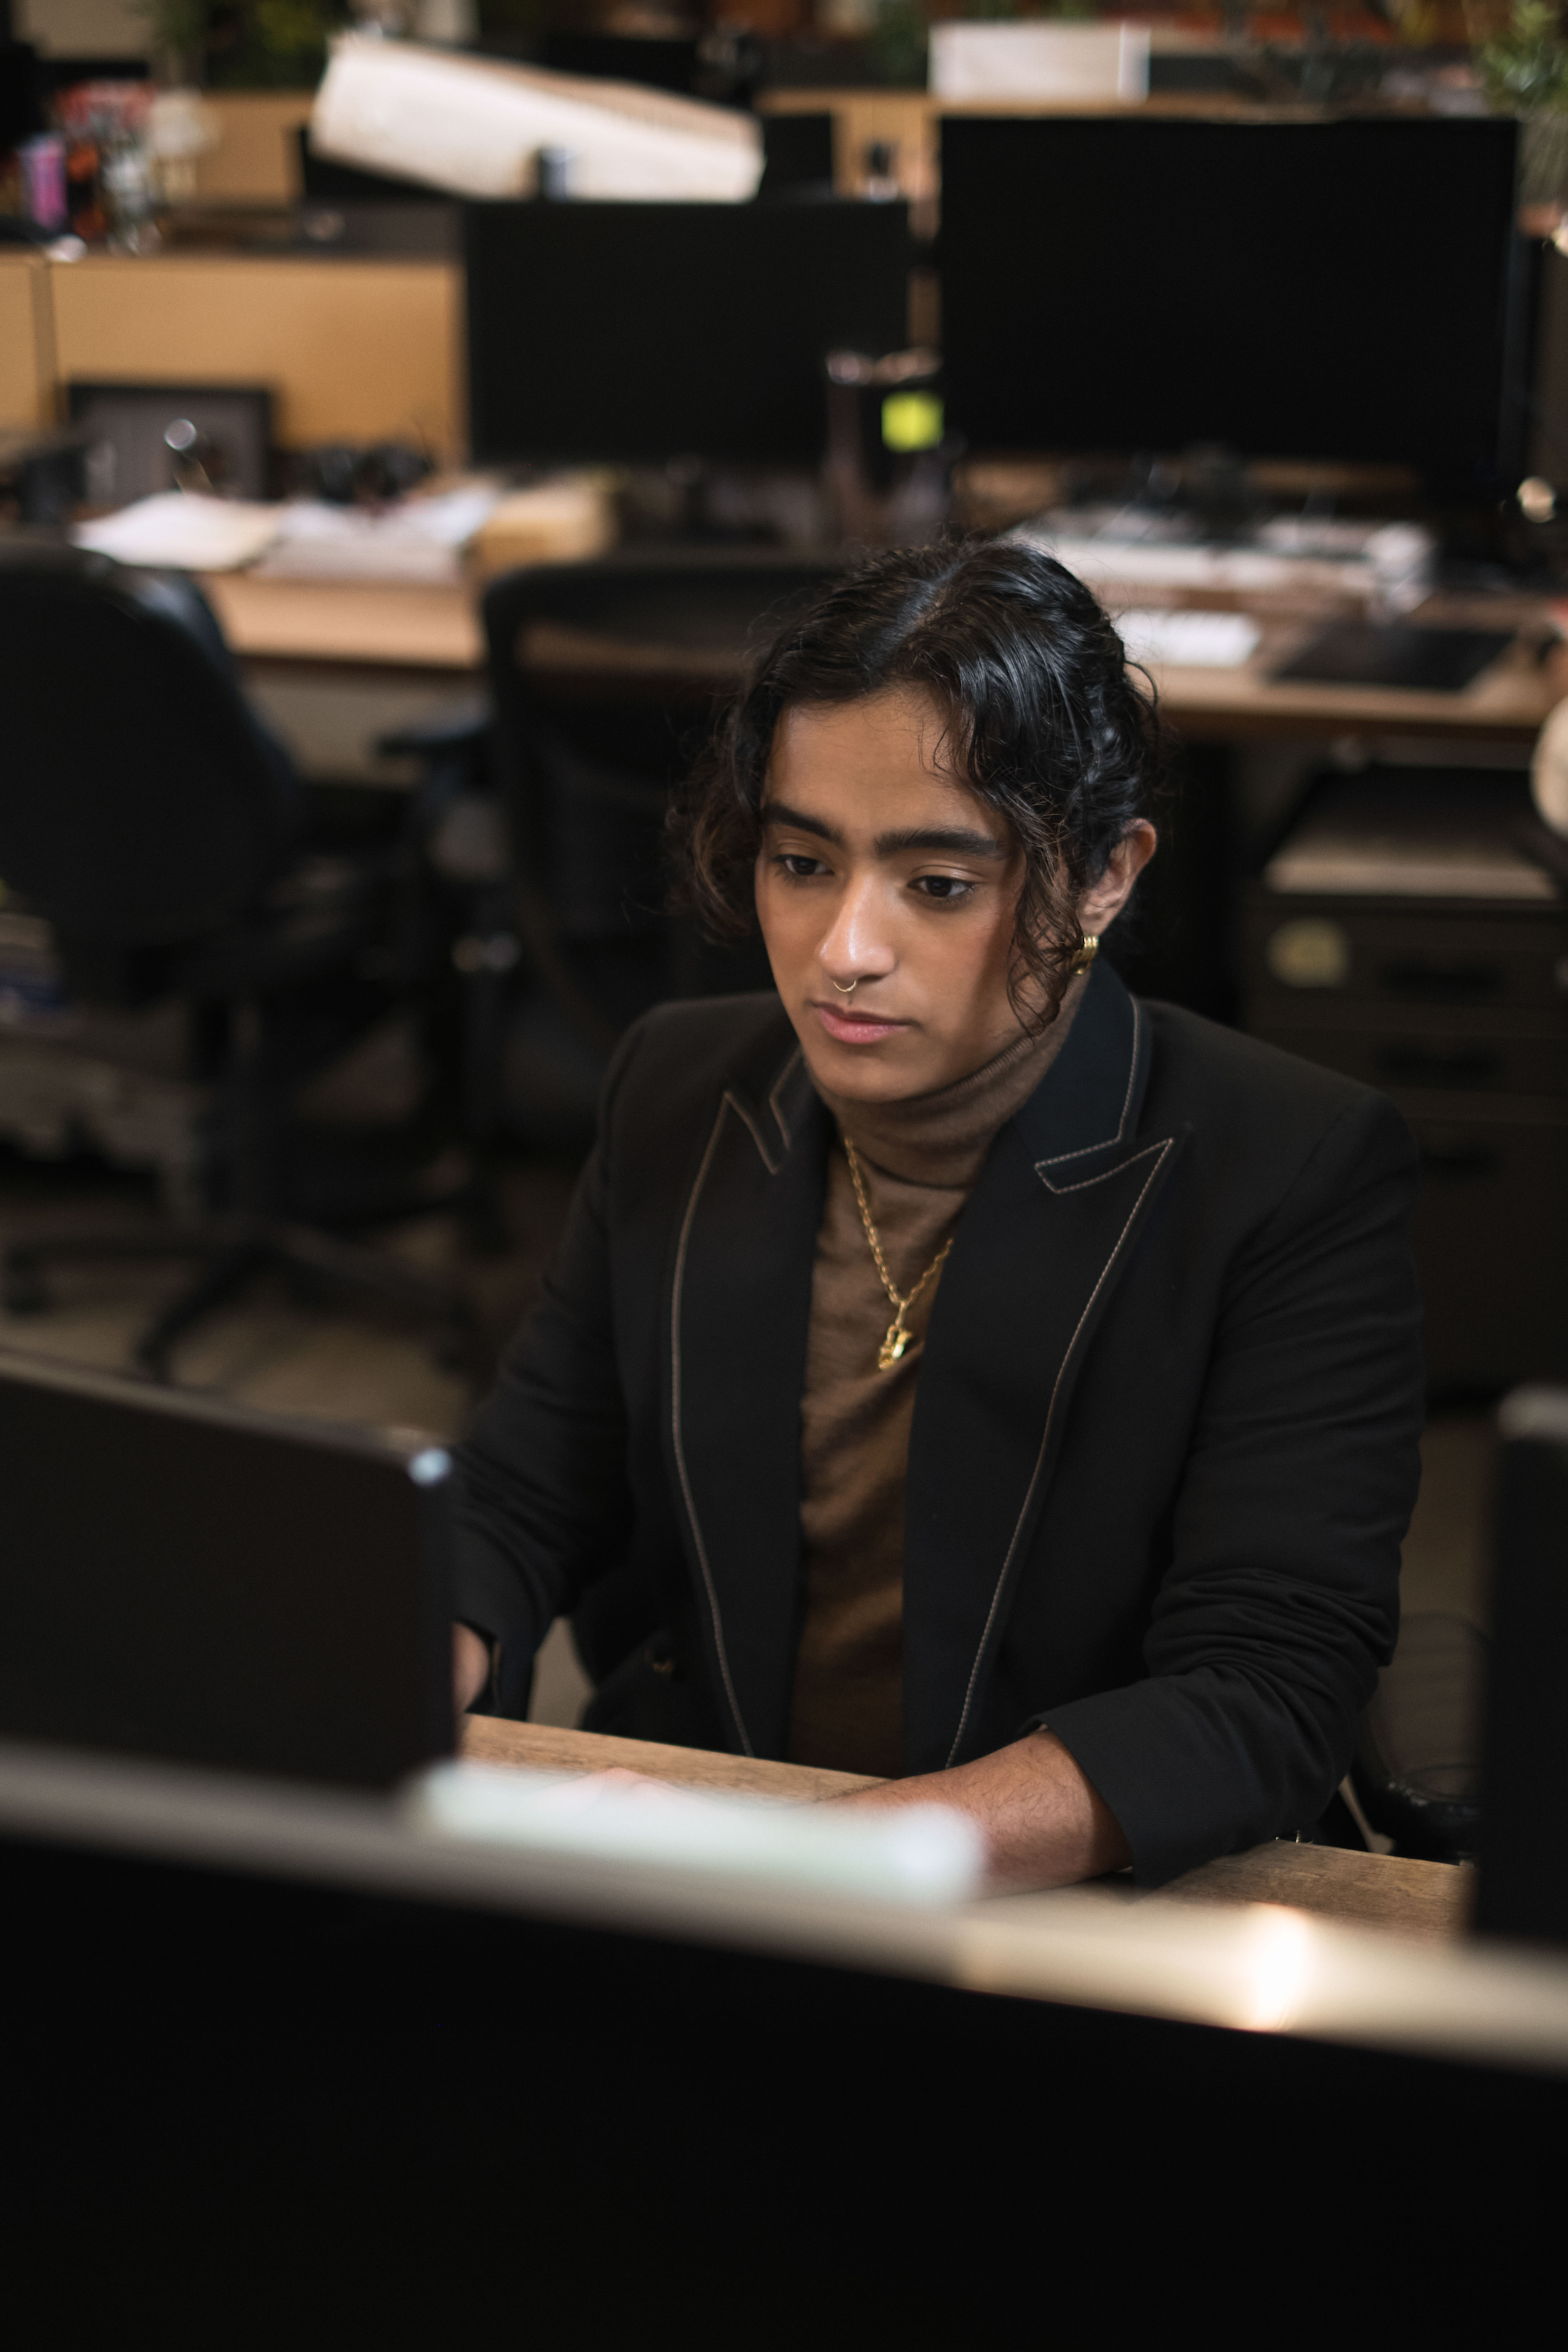 A trans man working at a desk in an office